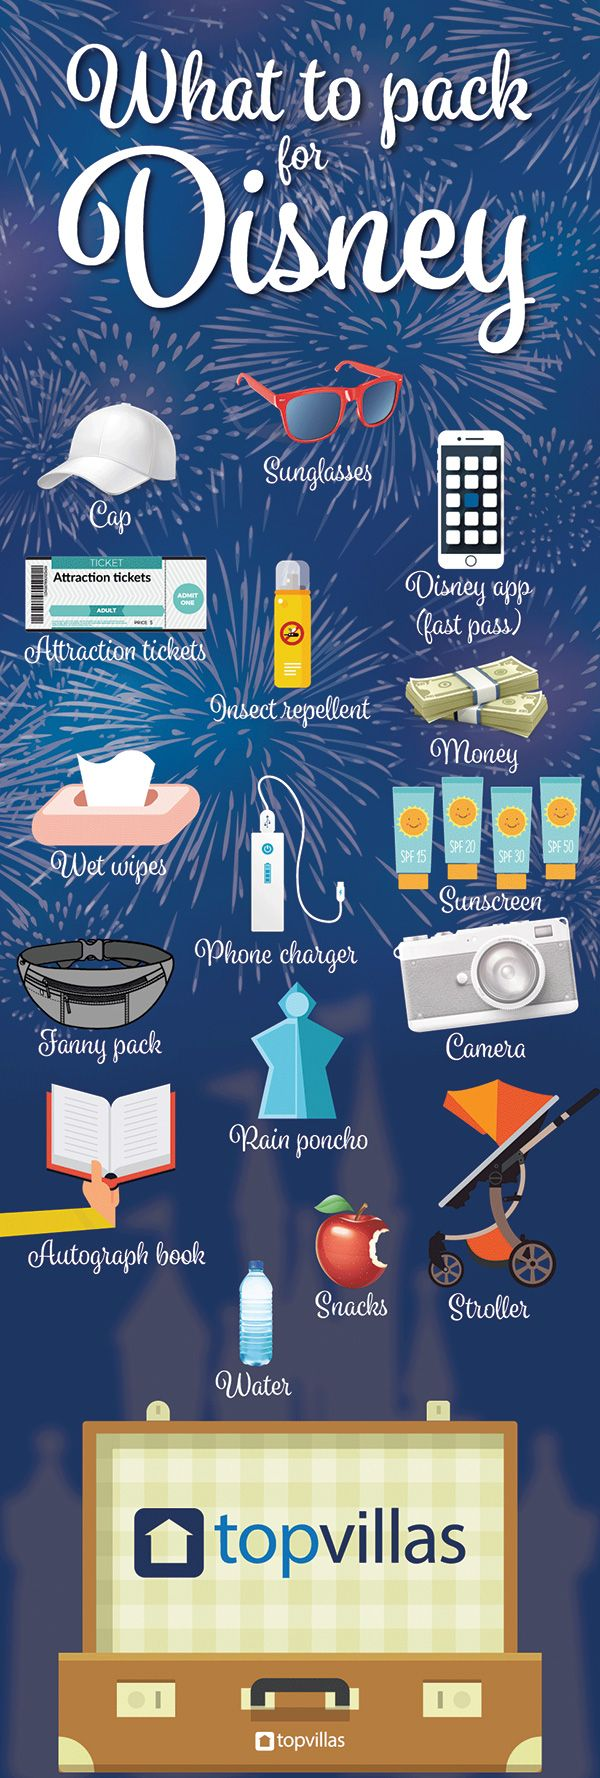 Packing for Disney: the Ultimate Guide | DiSnEy In My bAG ...